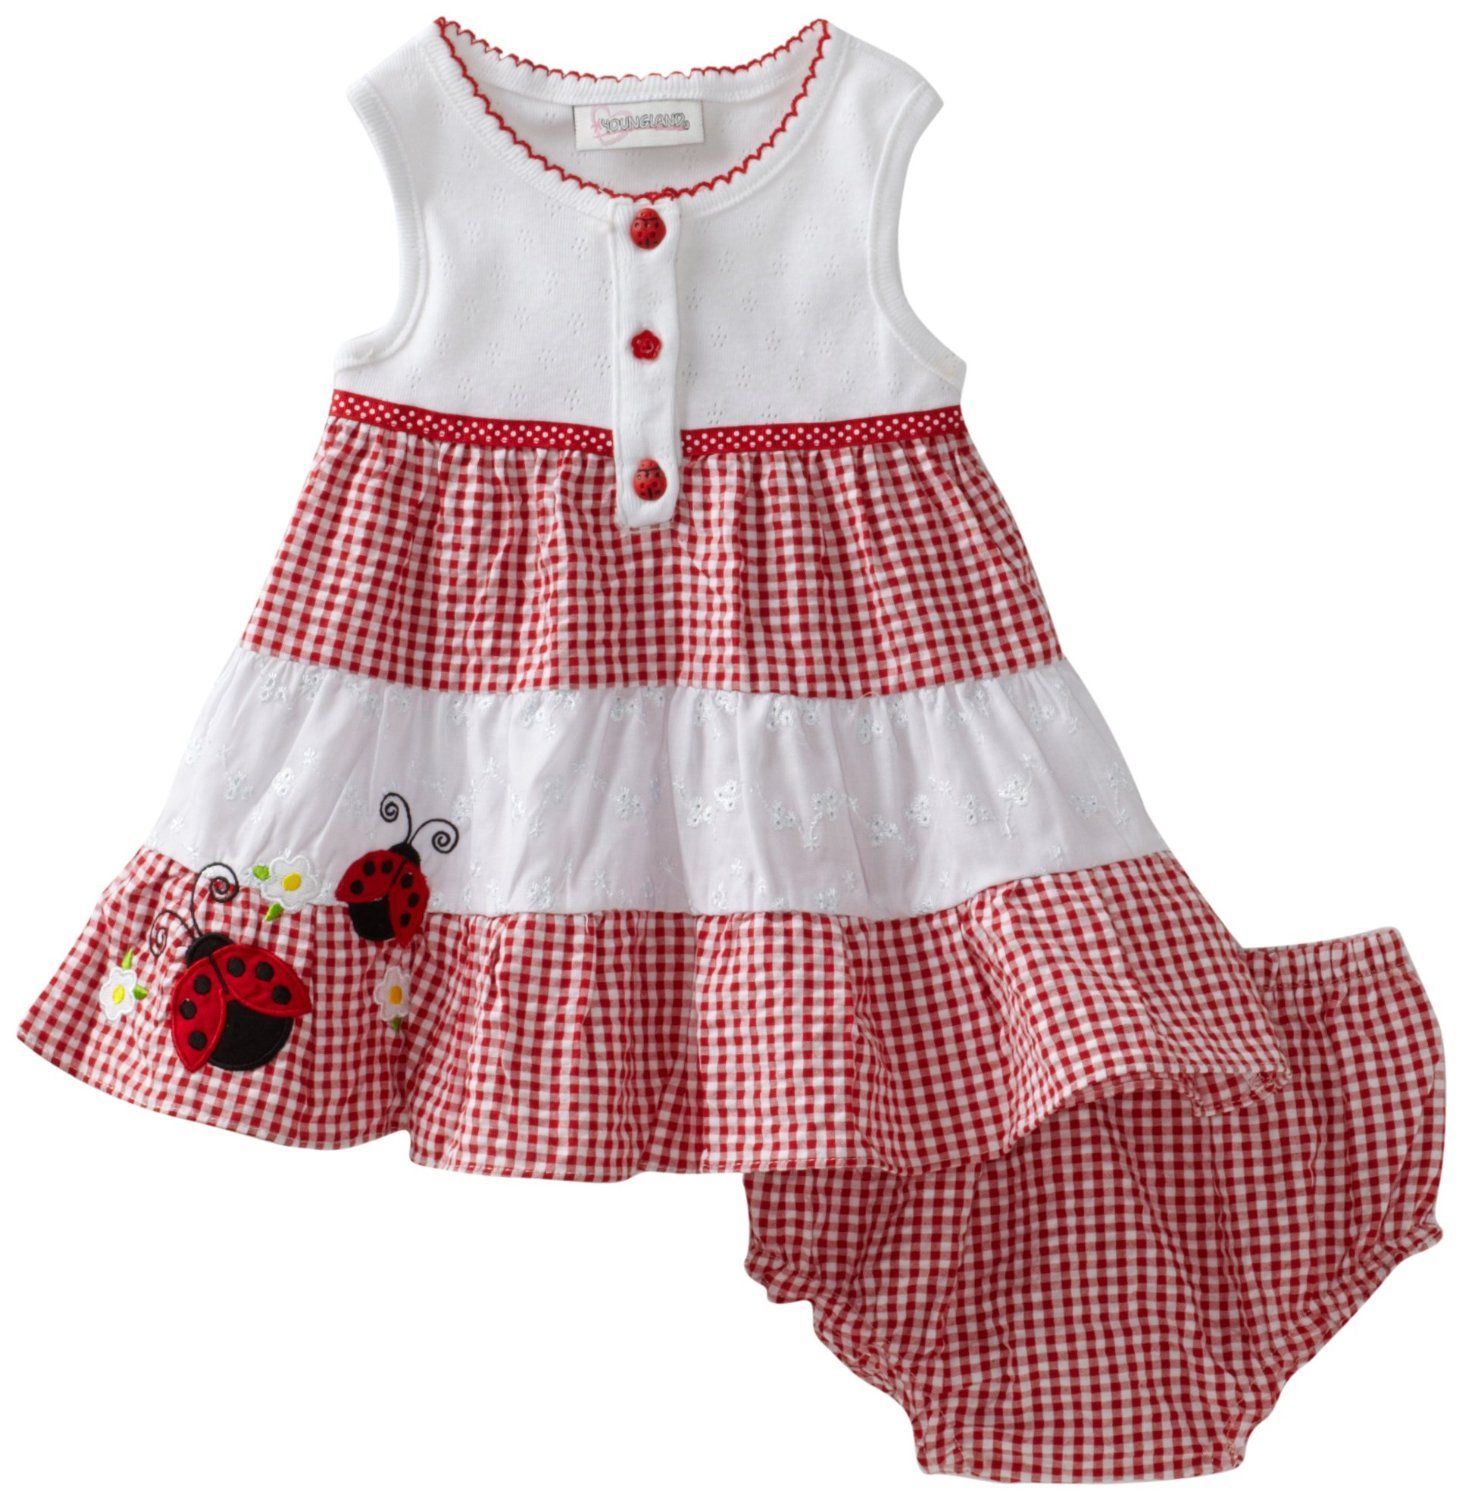 Toddler Girl Dresses | Your baby girl will look really cute in this ...